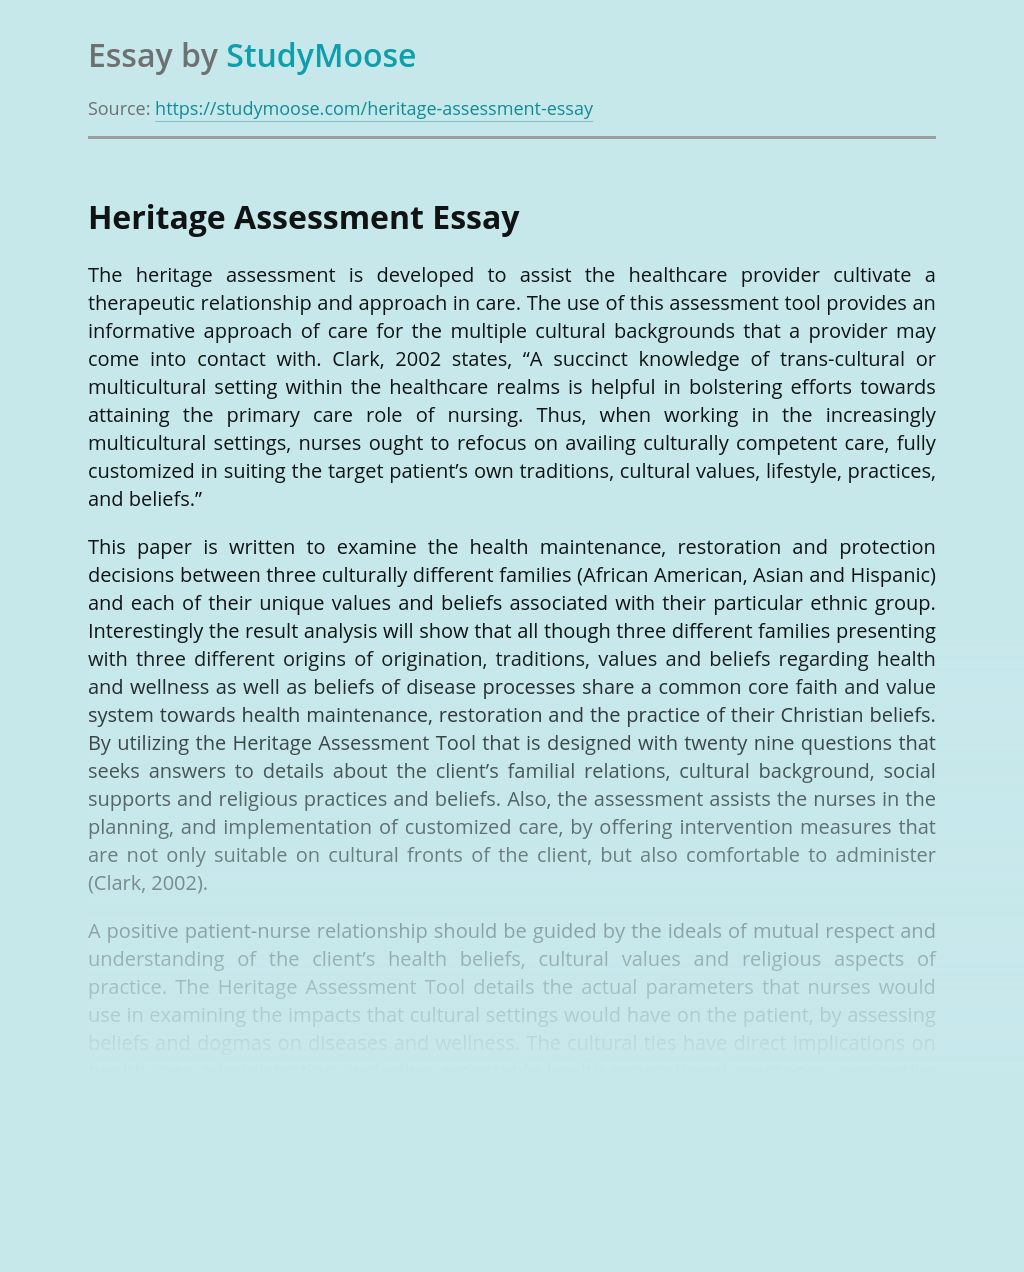 Heritage Assessment